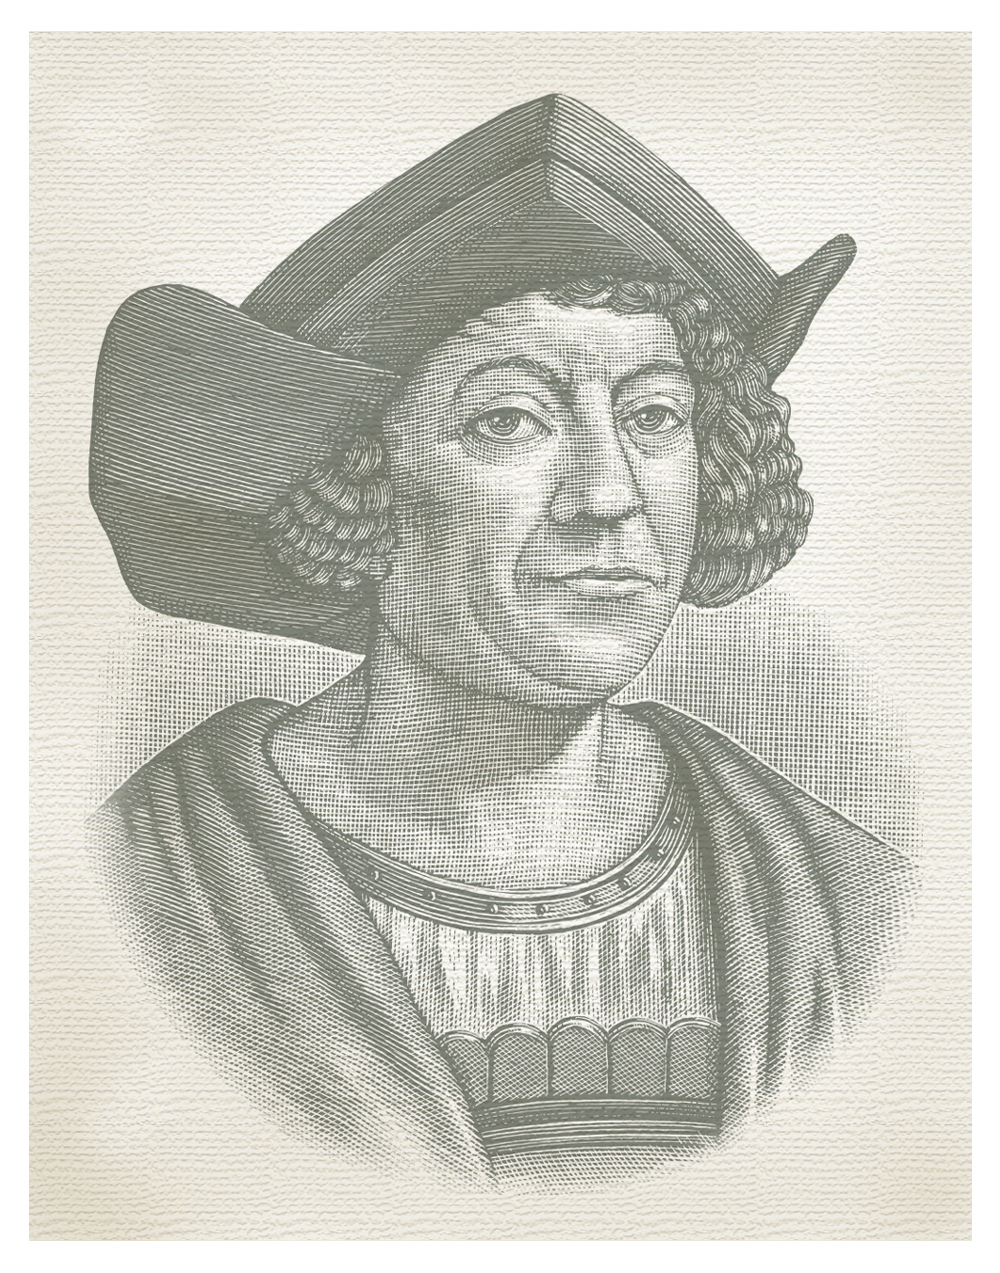 christopher columbus good or bad Christopher columbus did not do a single good action in any of his four voyages in the late 1400's christopher columbus was not the founder of the americas we live in today because he did not discover it, even if he did there were already the natives who inhabited the land.